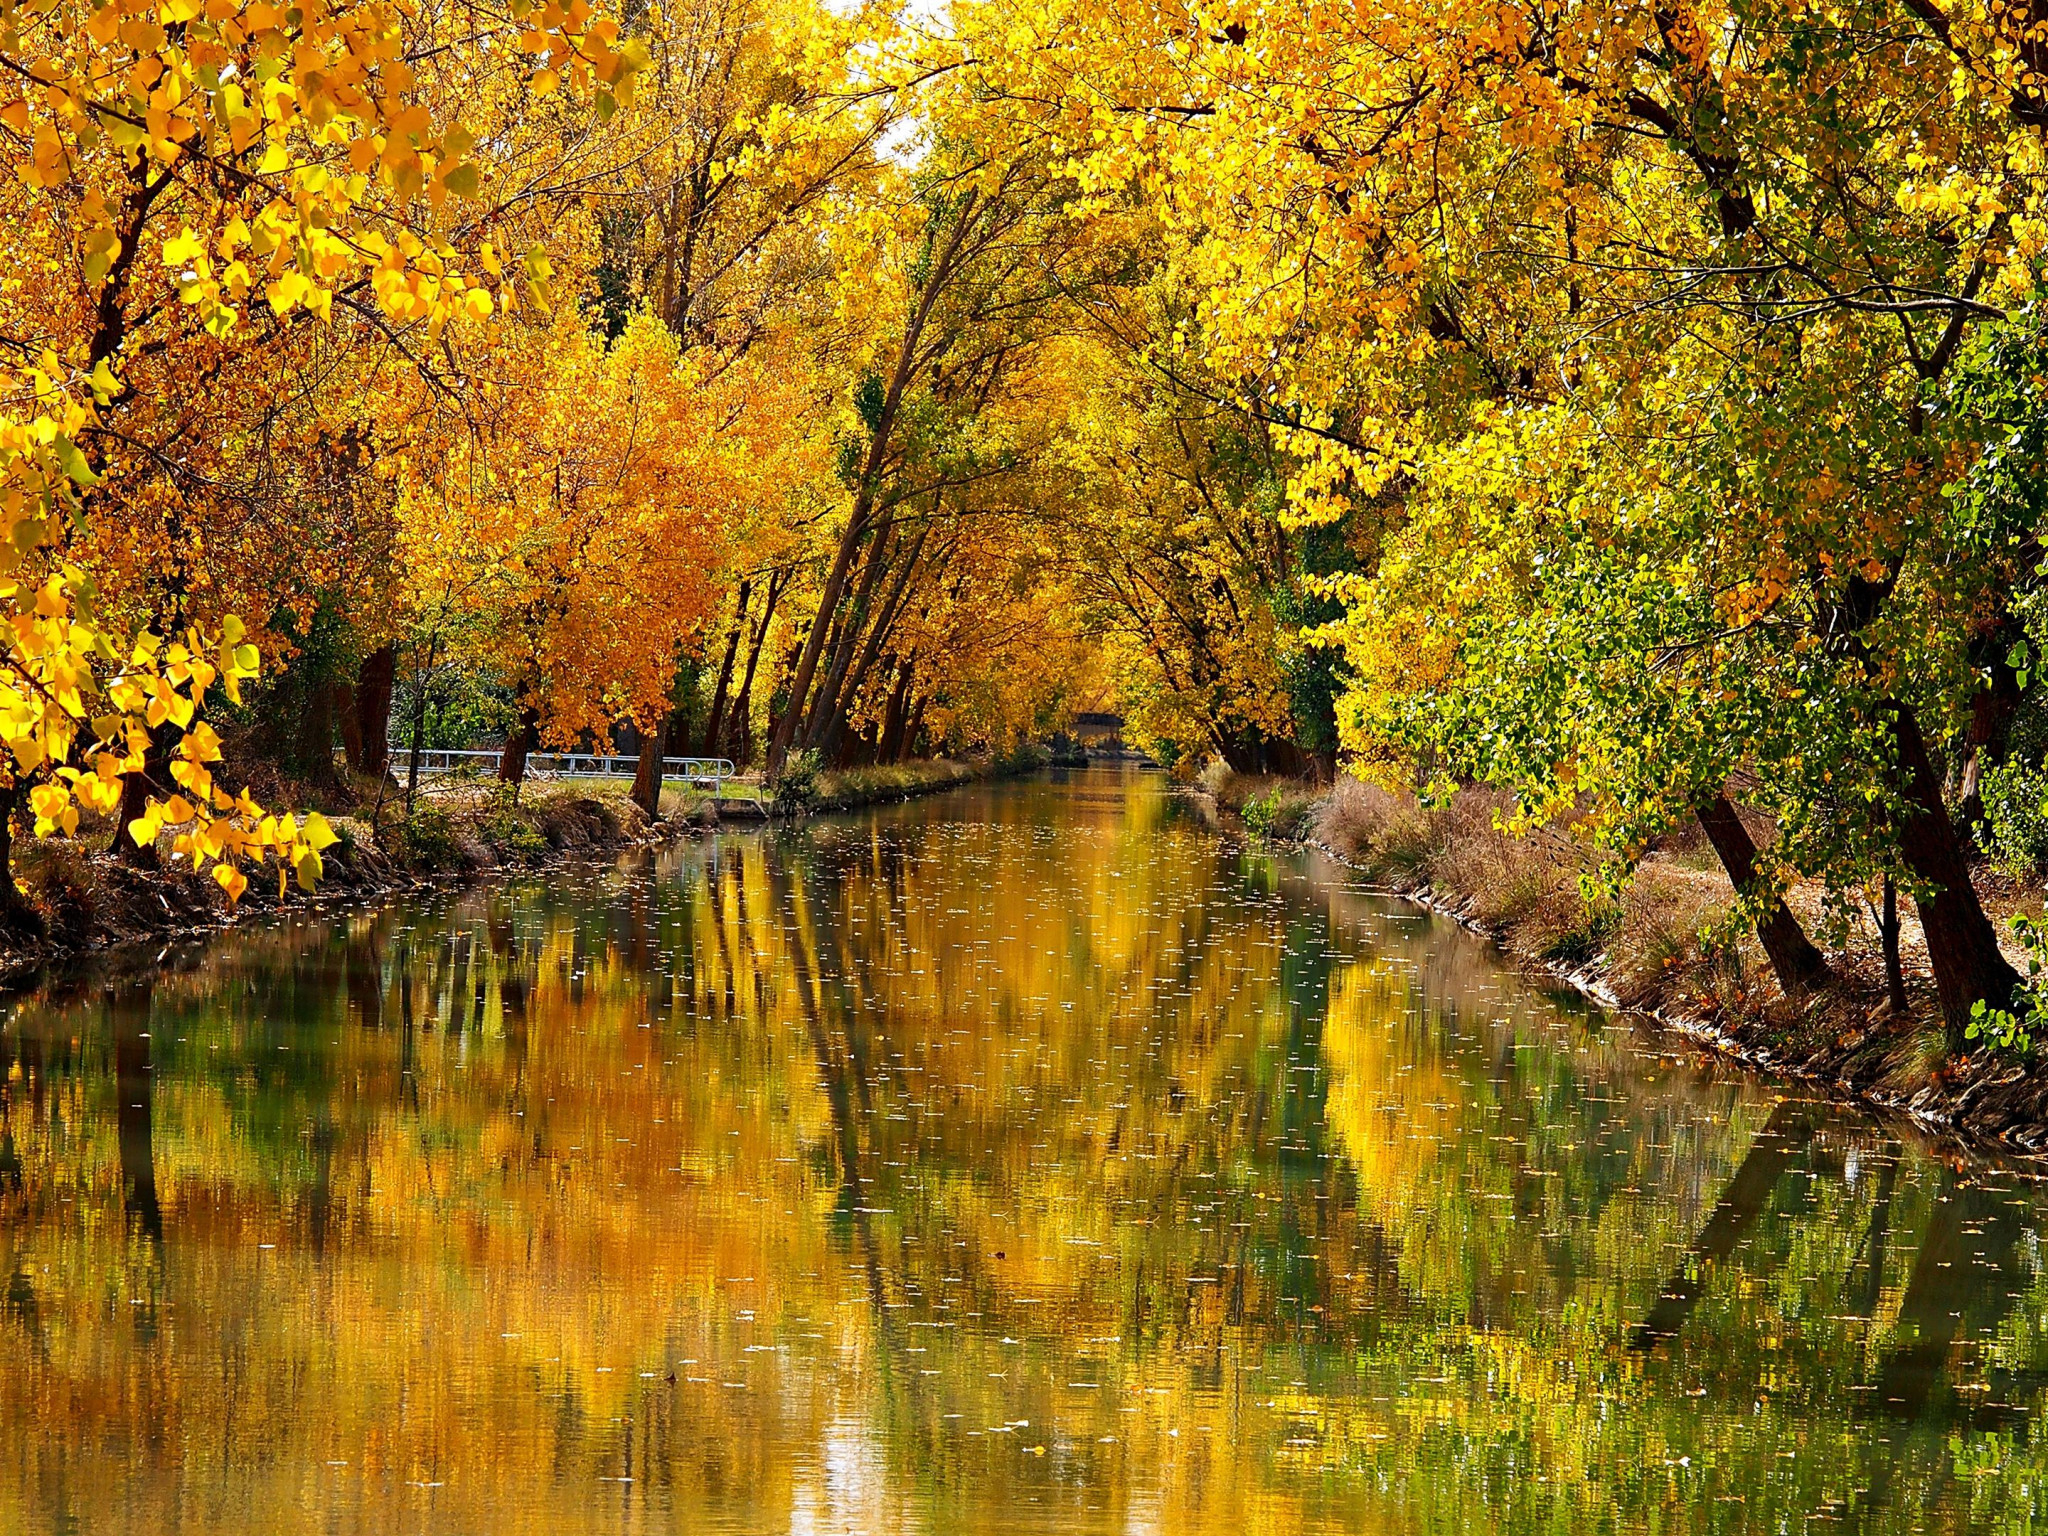 river between leafed yellow autumn trees with reflection 4k nature